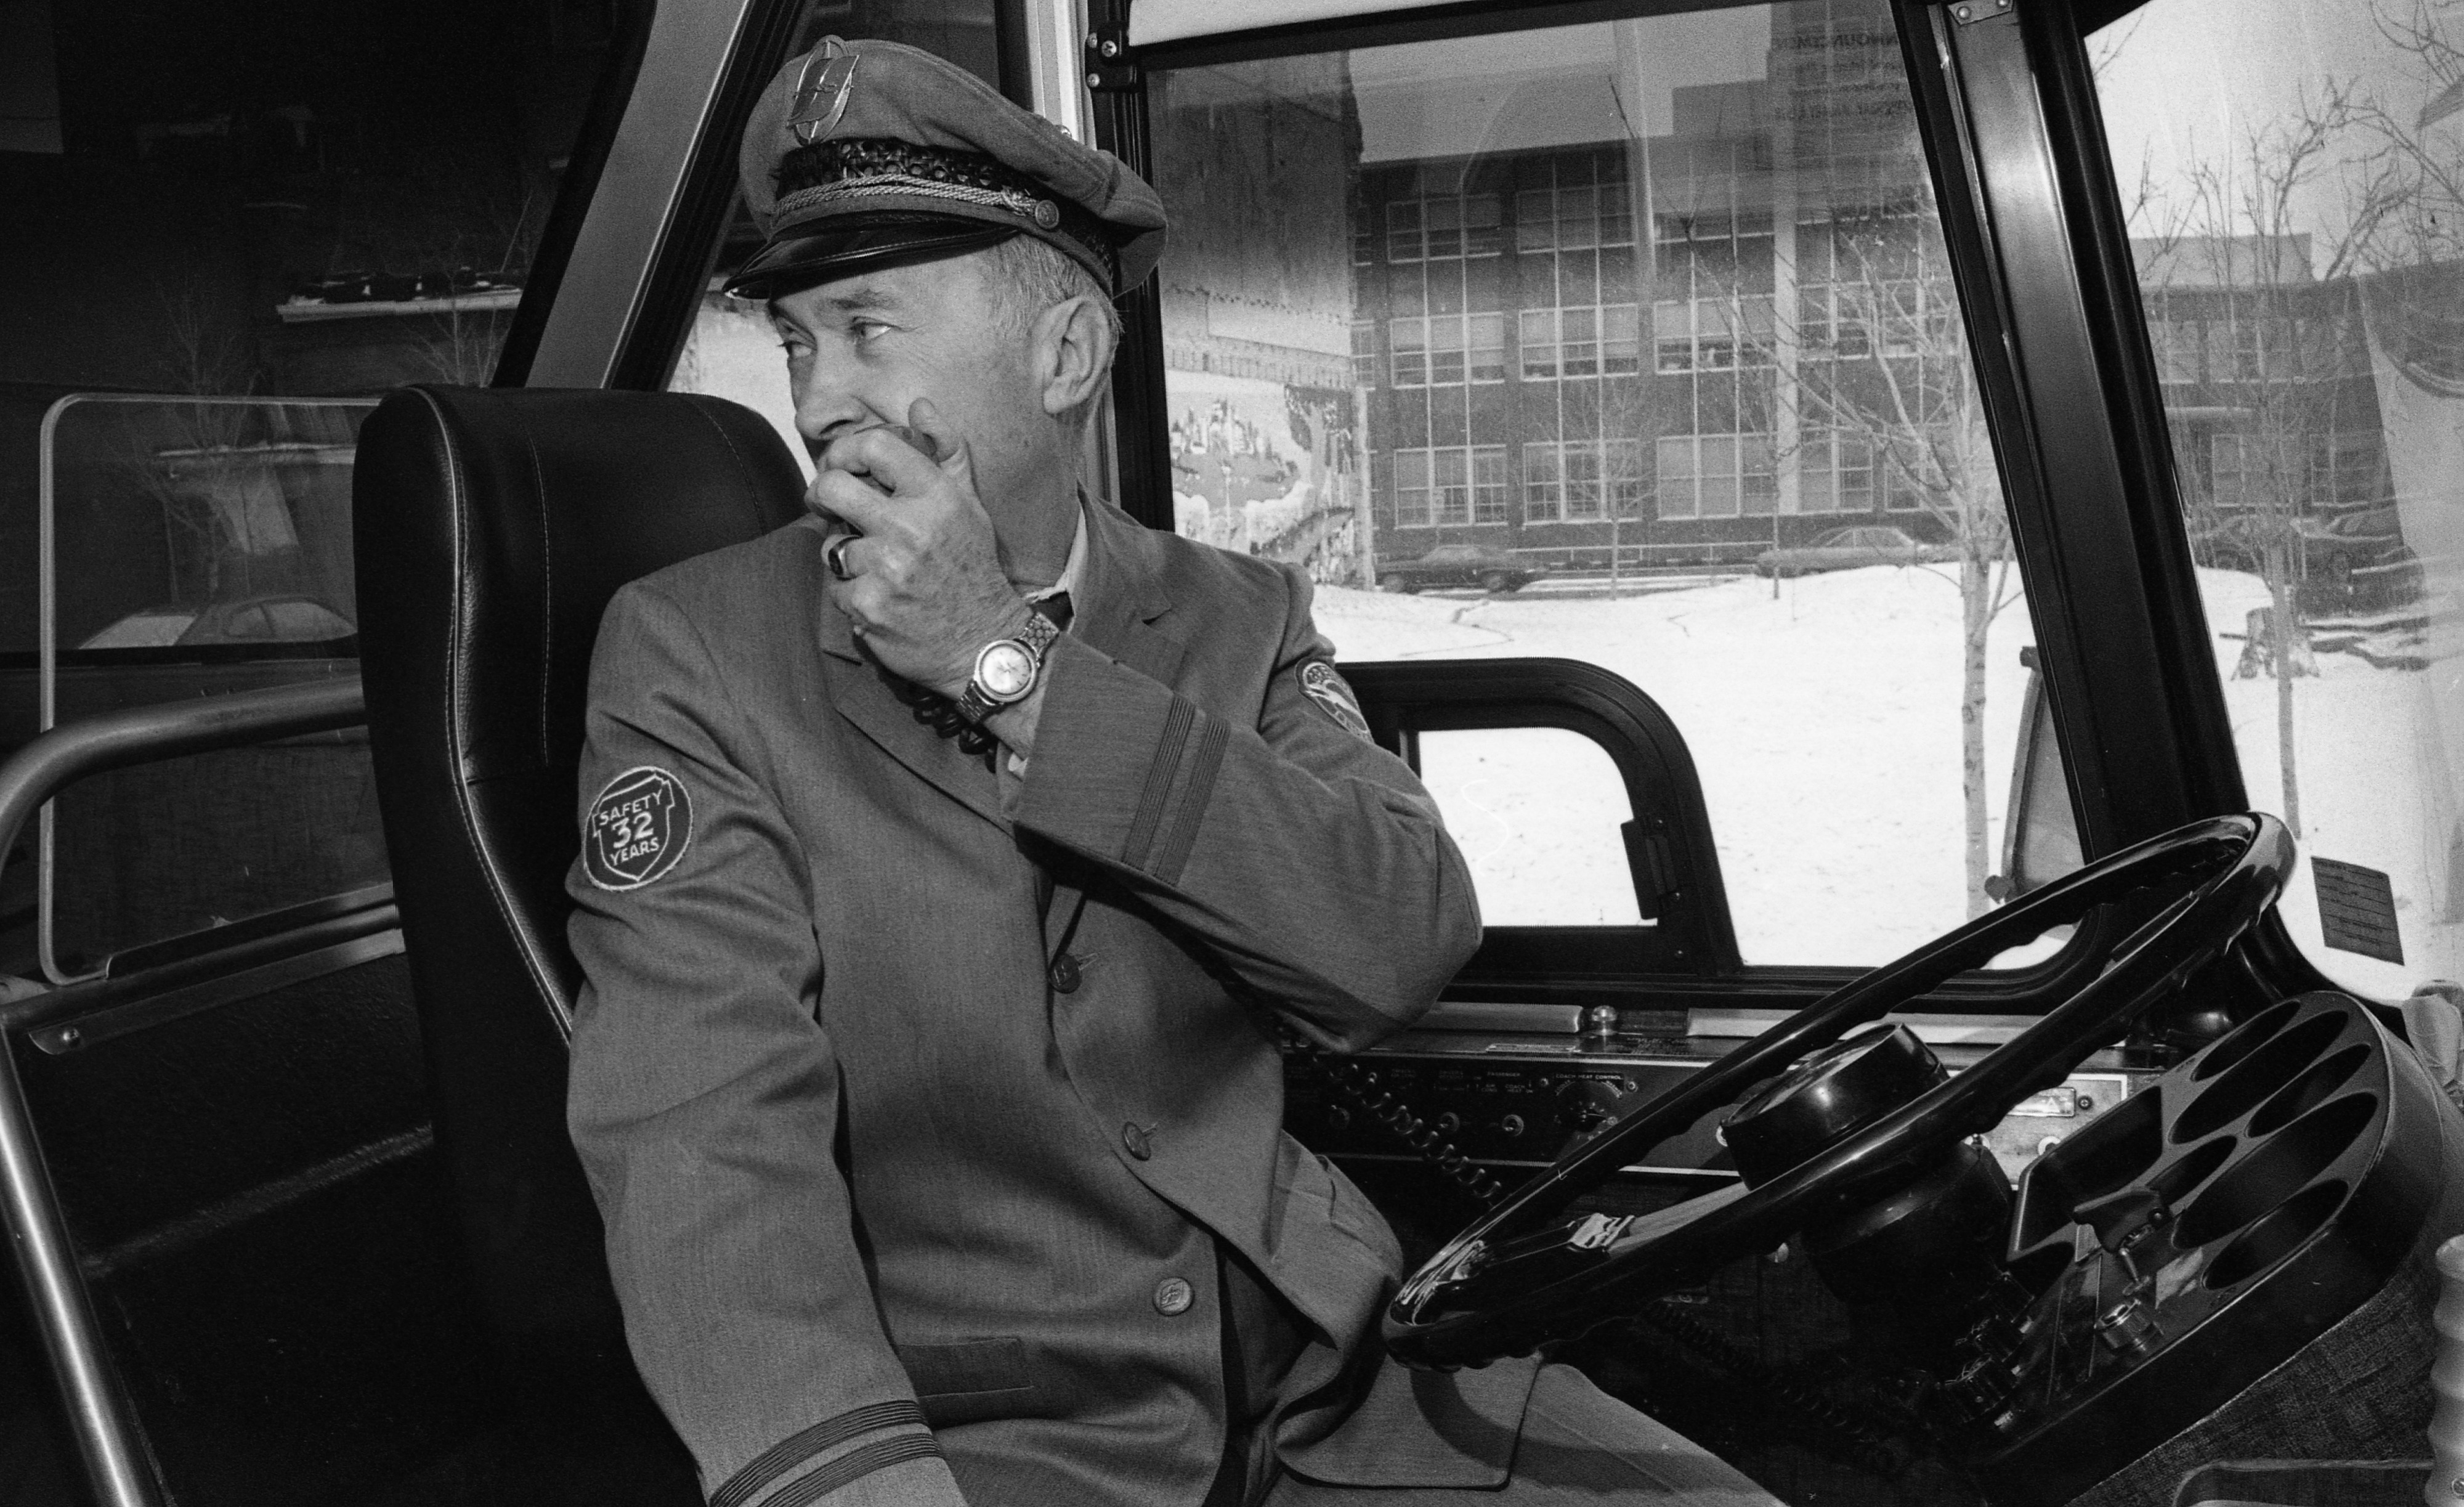 Greyhound Bus Driver Robert H. Morrow Retires After 32 Years, December 1977 image